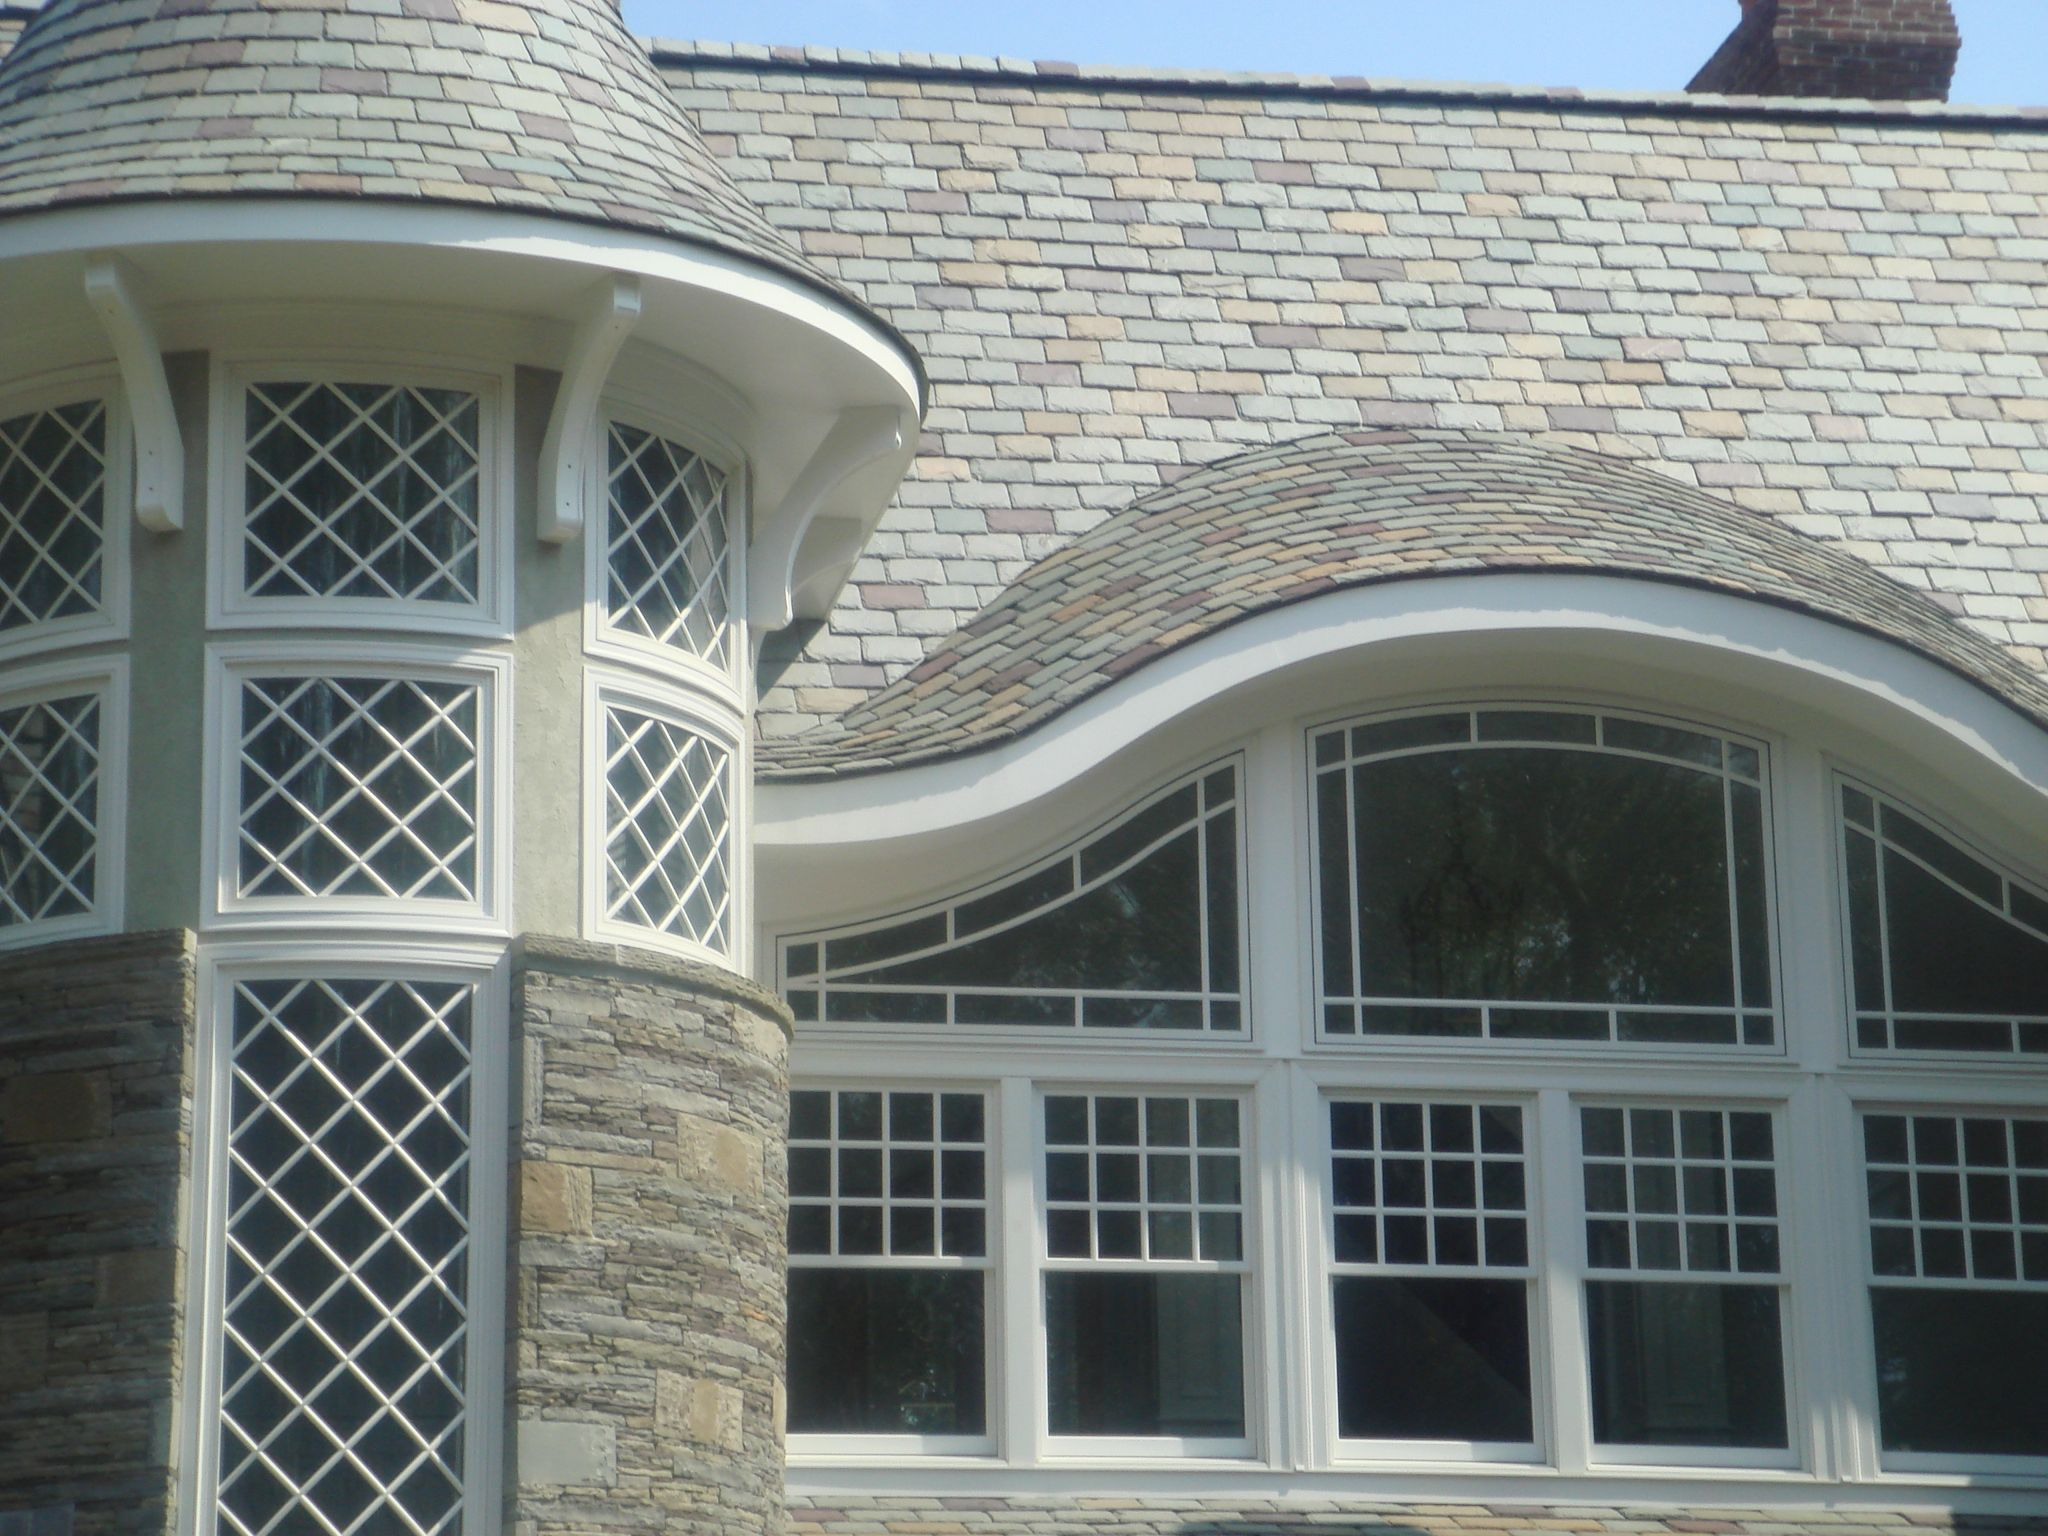 Eyebrow window windows by for Eyebrow dormer windows